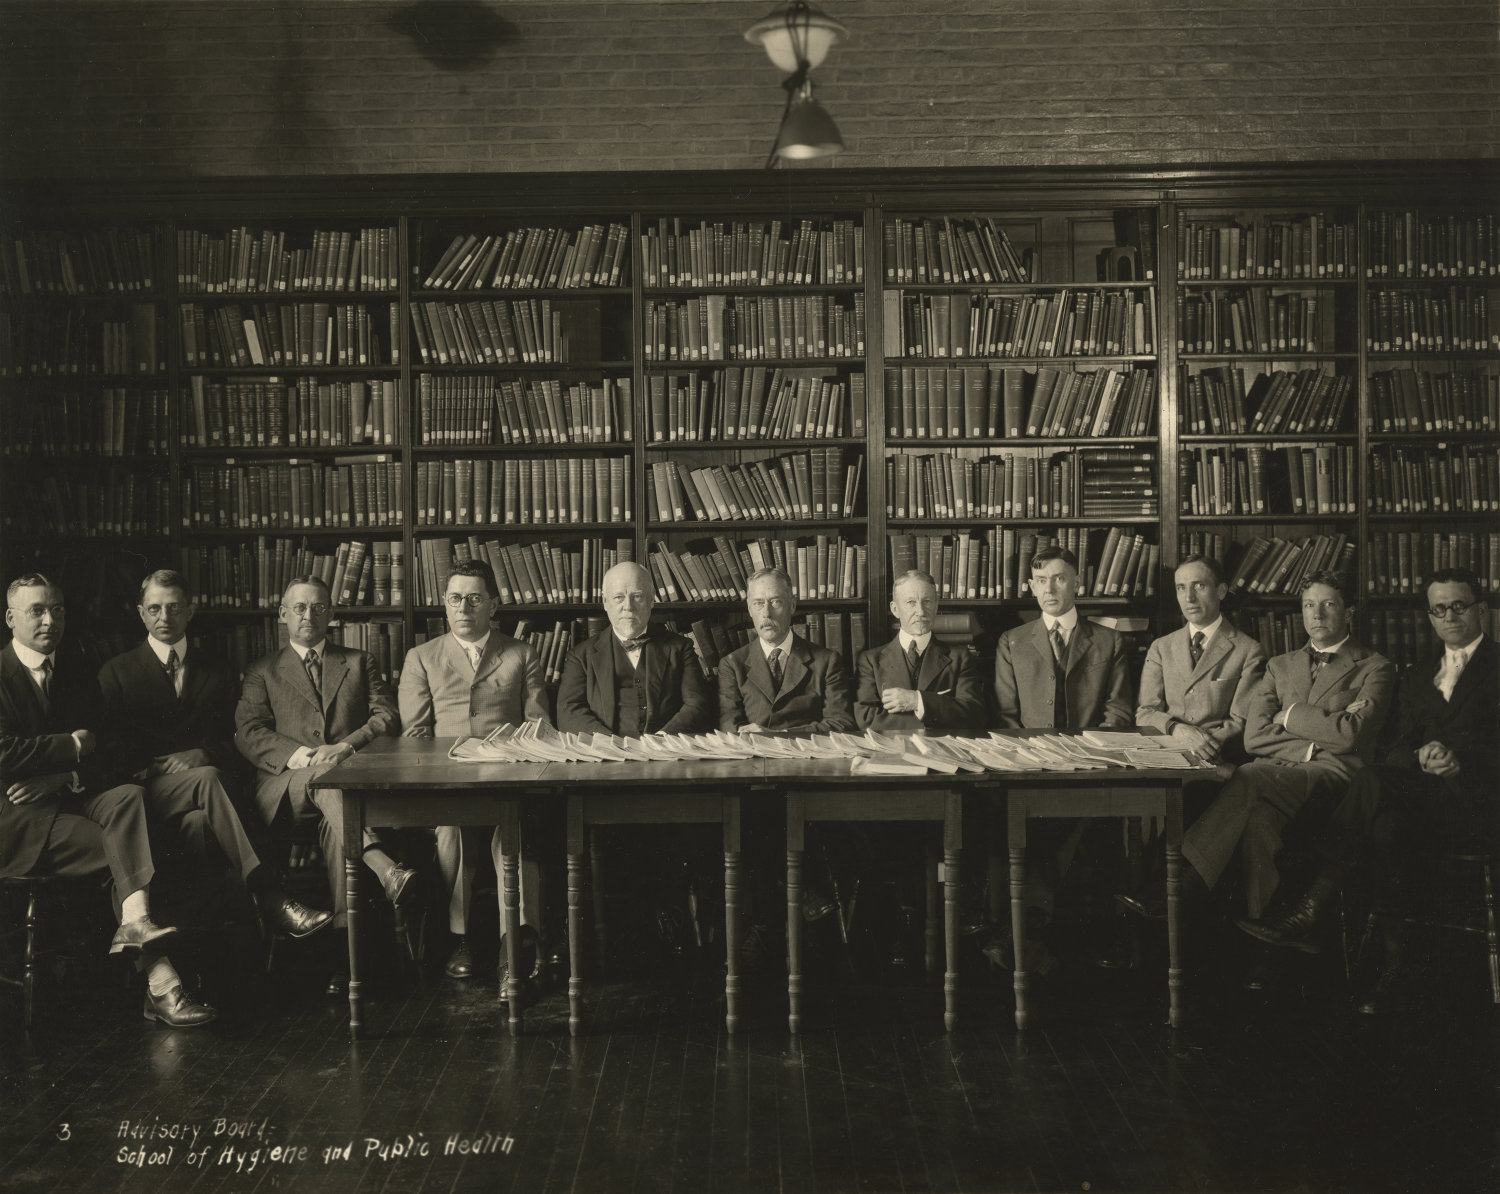 Advisory Board of the School of Hygiene and Public Health